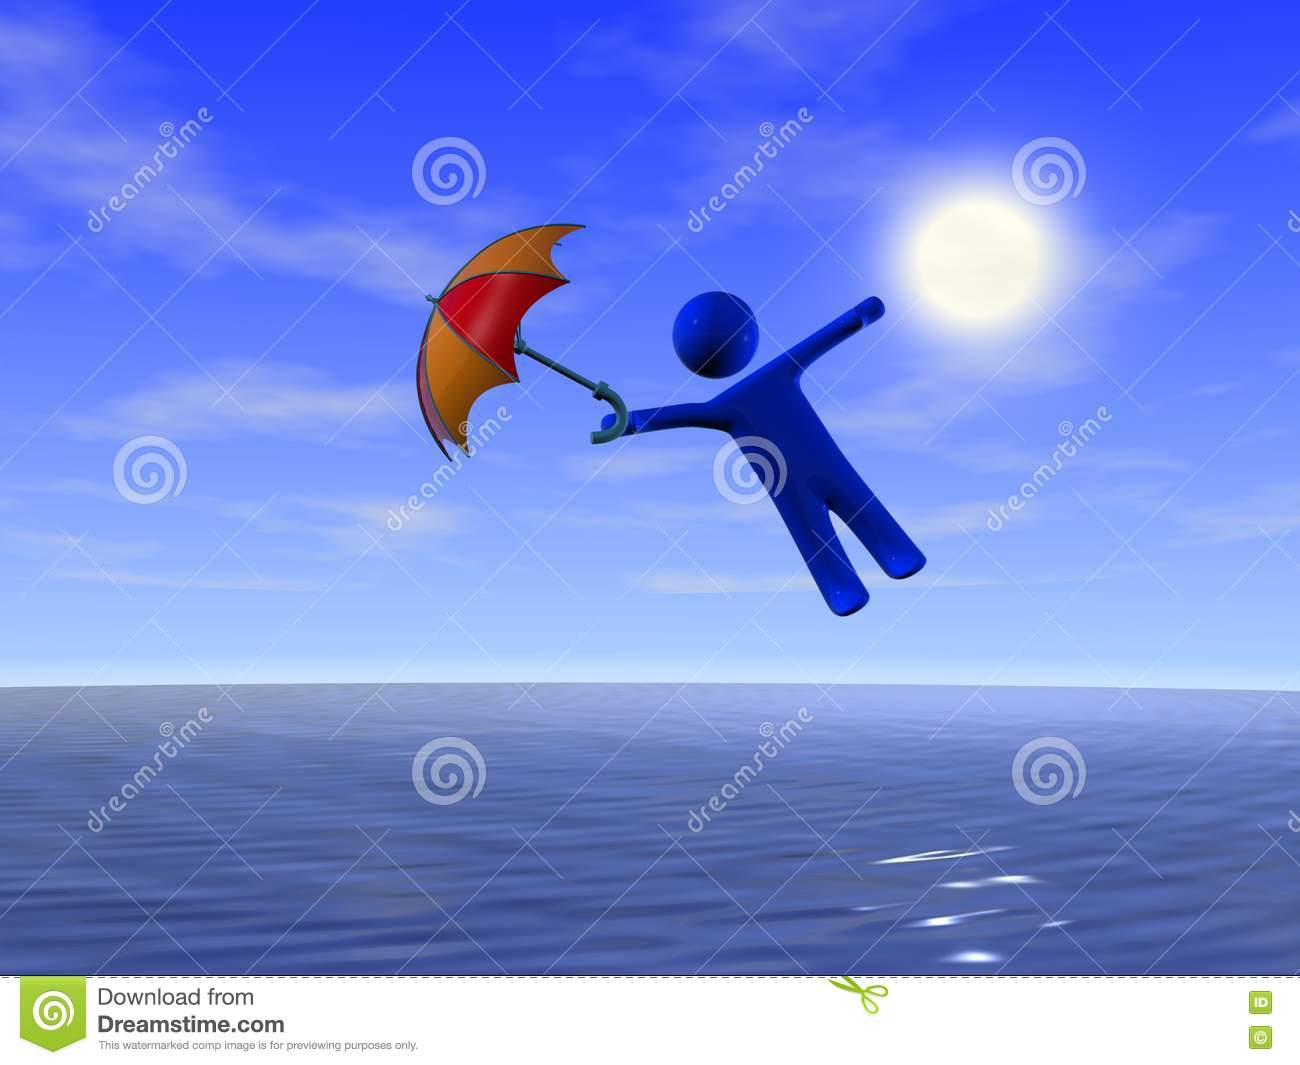 Royalty Free Stock Photos Umbrella Person Sea Image8785848 on Windy Days Clipart